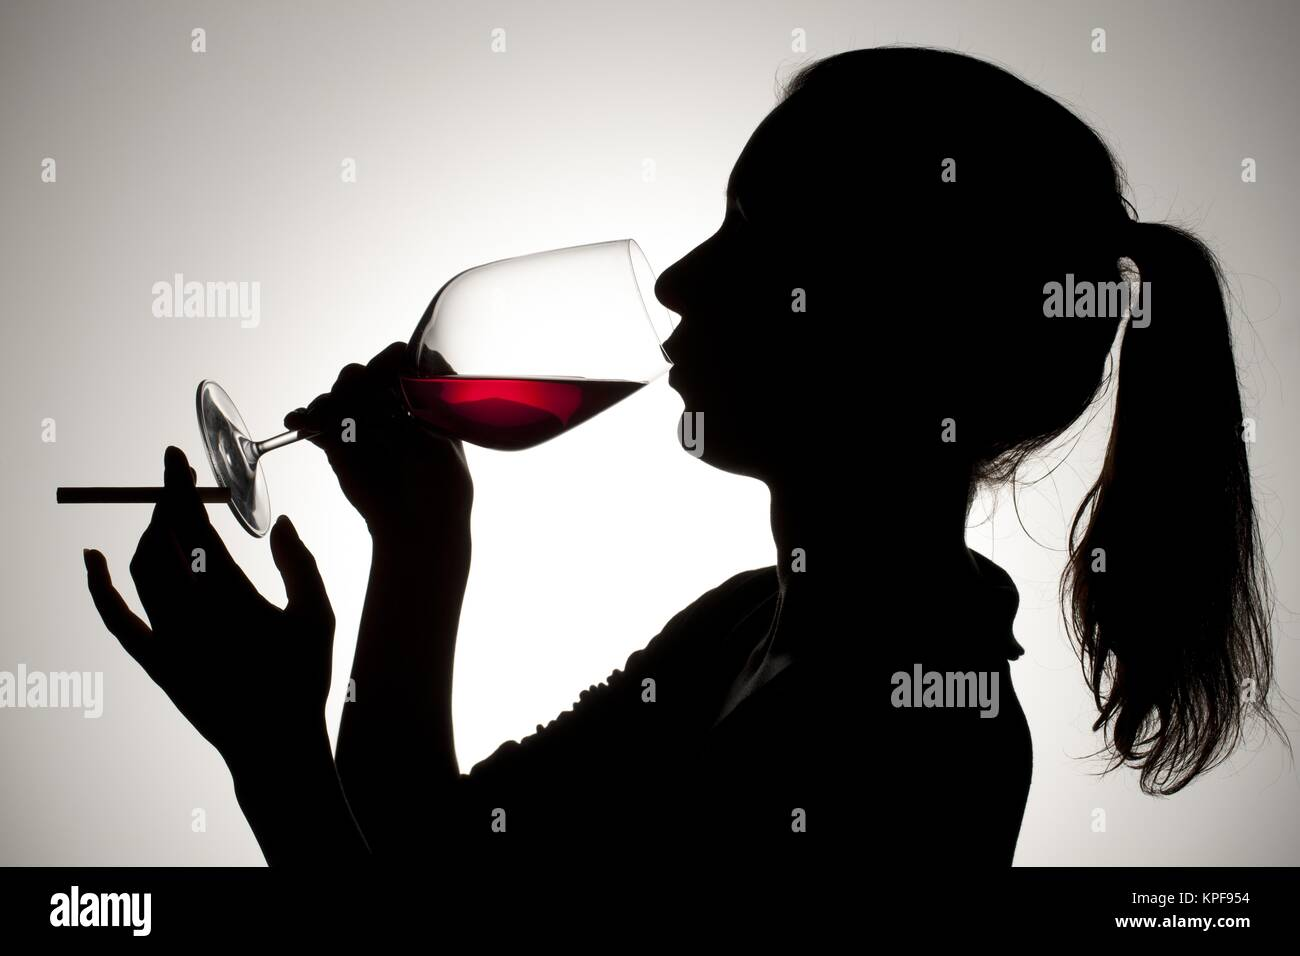 female drinking red wine while smoking - Stock Image